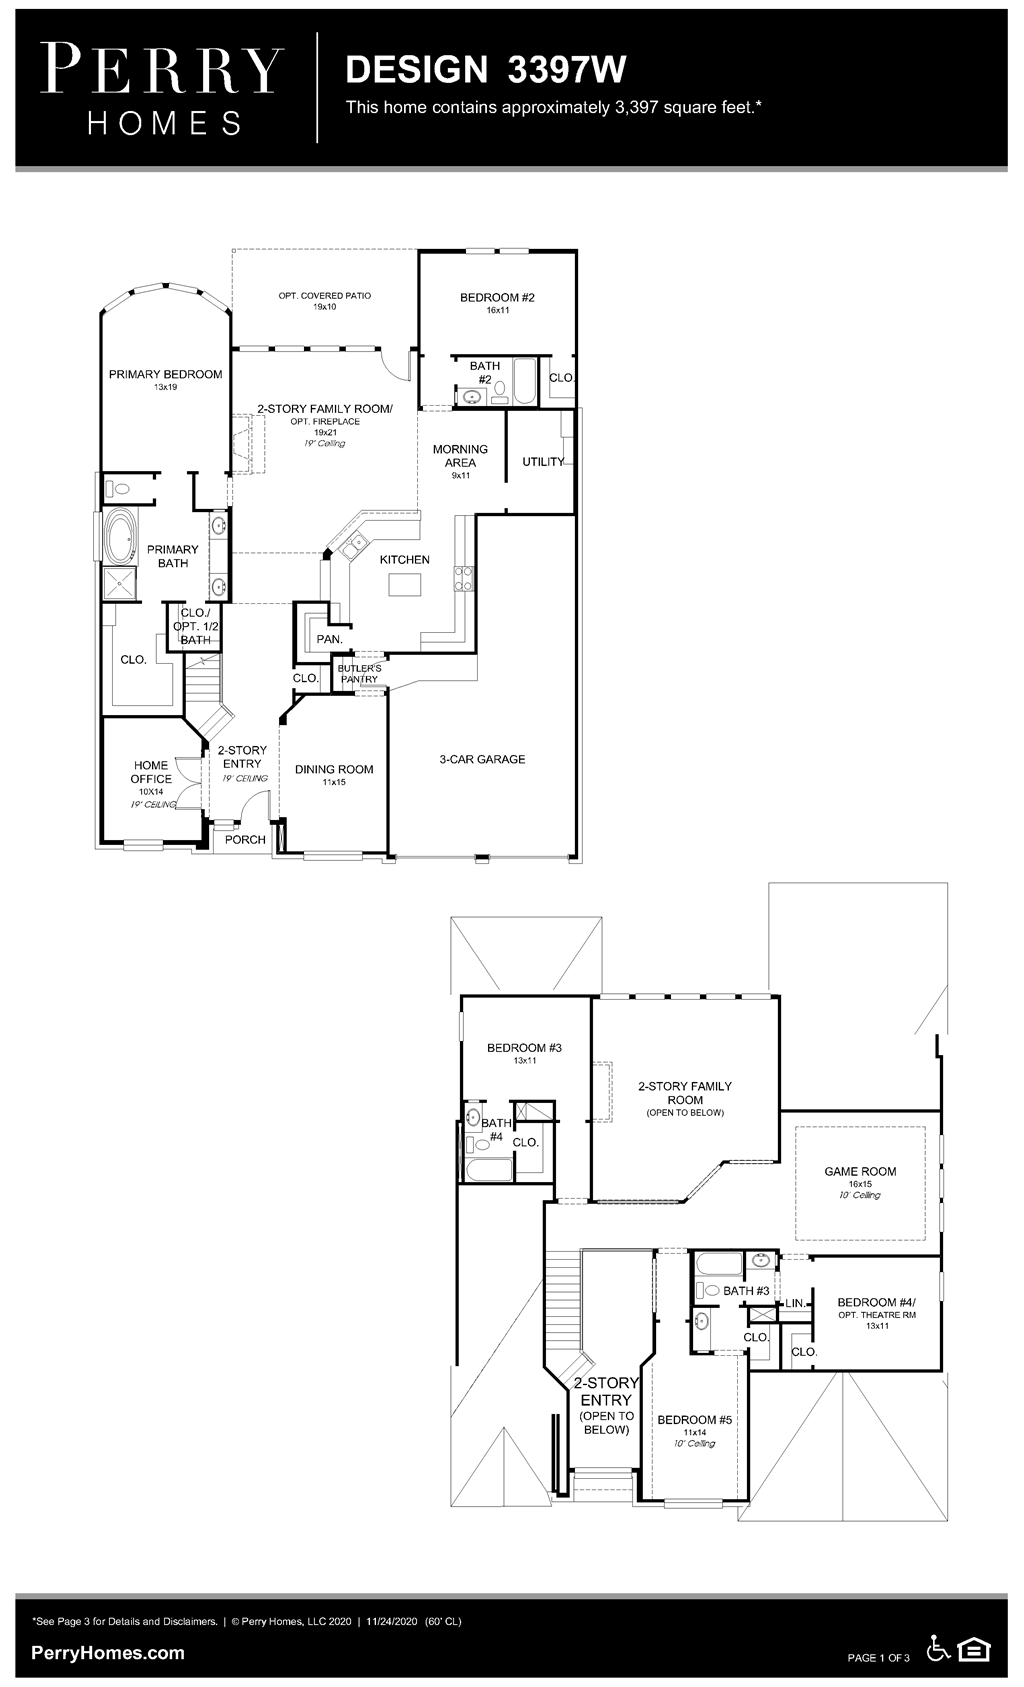 Floor Plan for 3397W